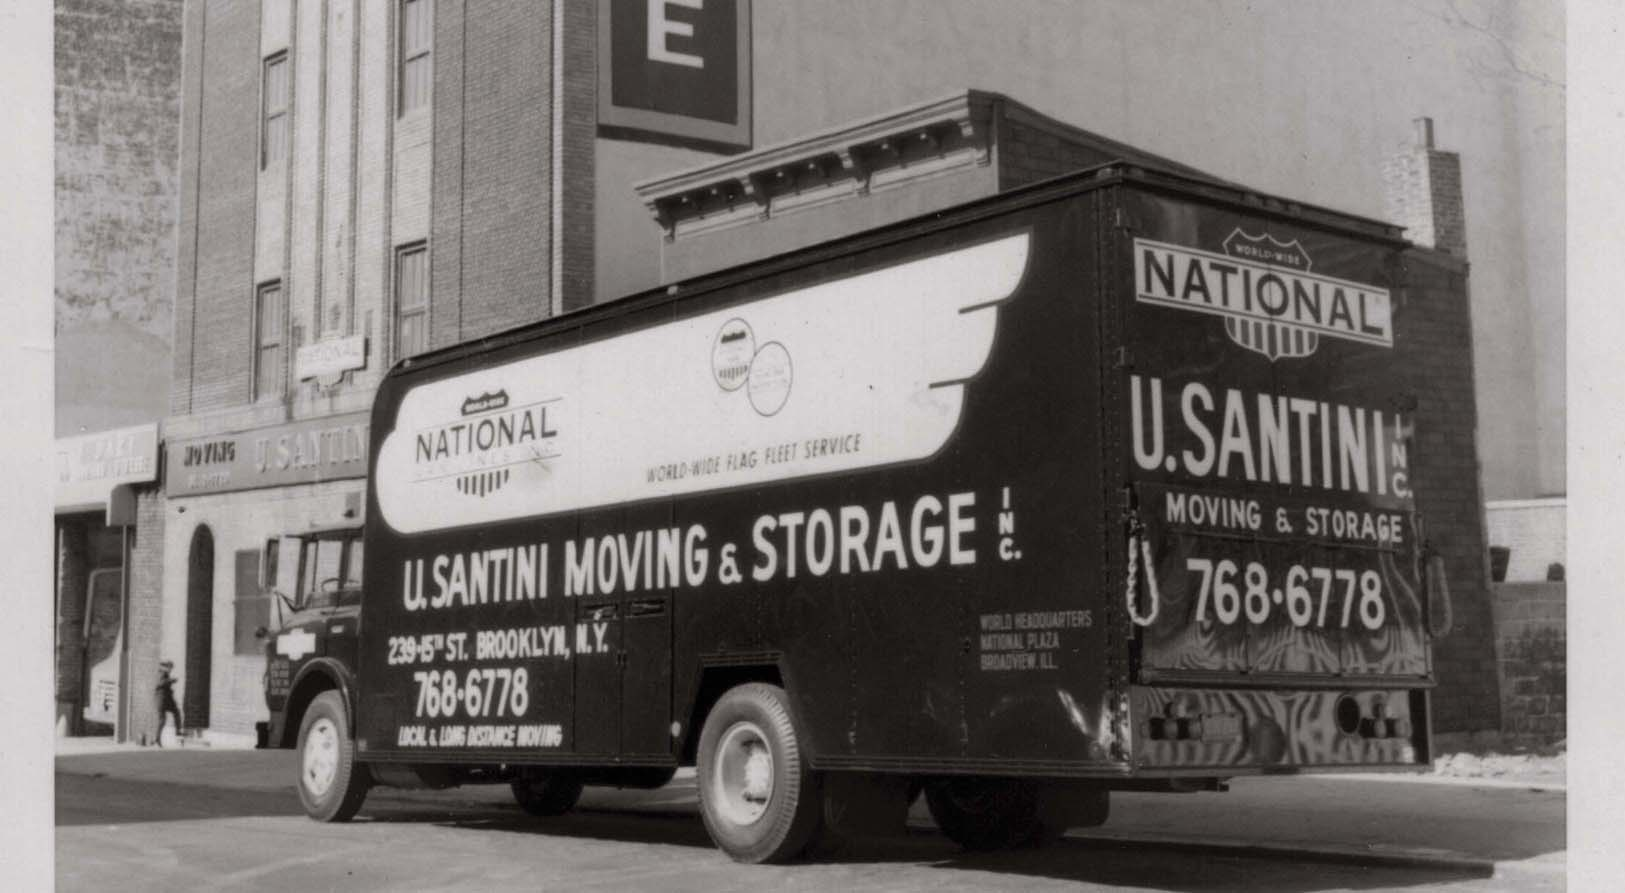 Charmant U. Santini Moving U0026 Storage Is The Original And Only Family Owned Moving  And Storage Company Based In Brooklyn, New York.